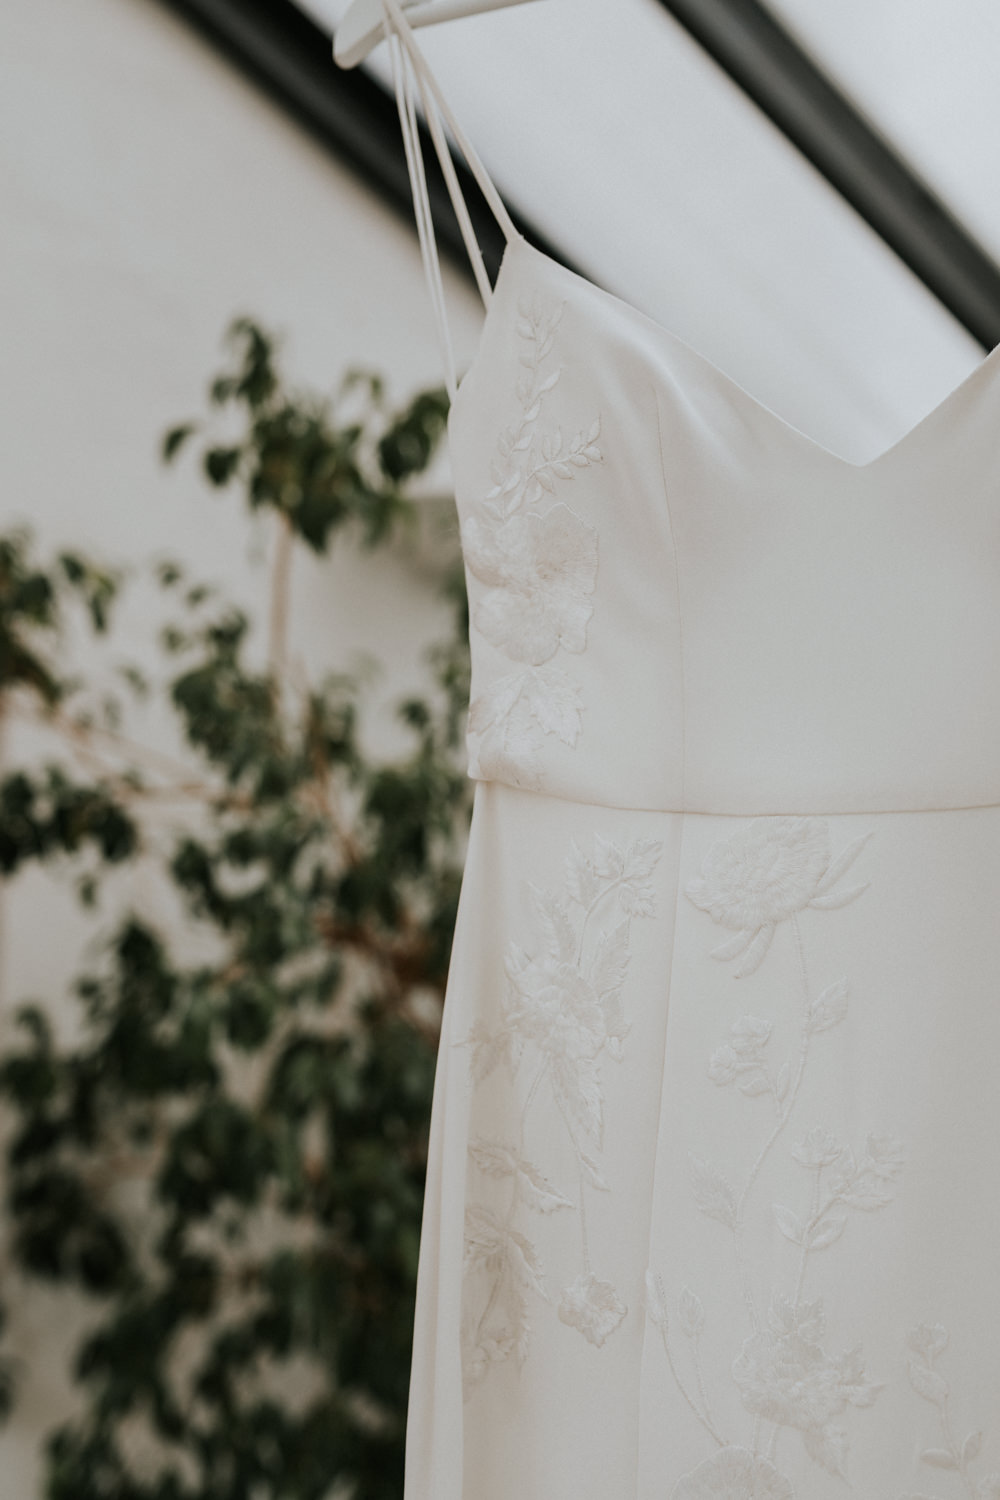 Hermione de Paula Dress Gown Bride Bridal Embroidery Personalised Wootton Farm Estate Wedding Kate Gray Photography